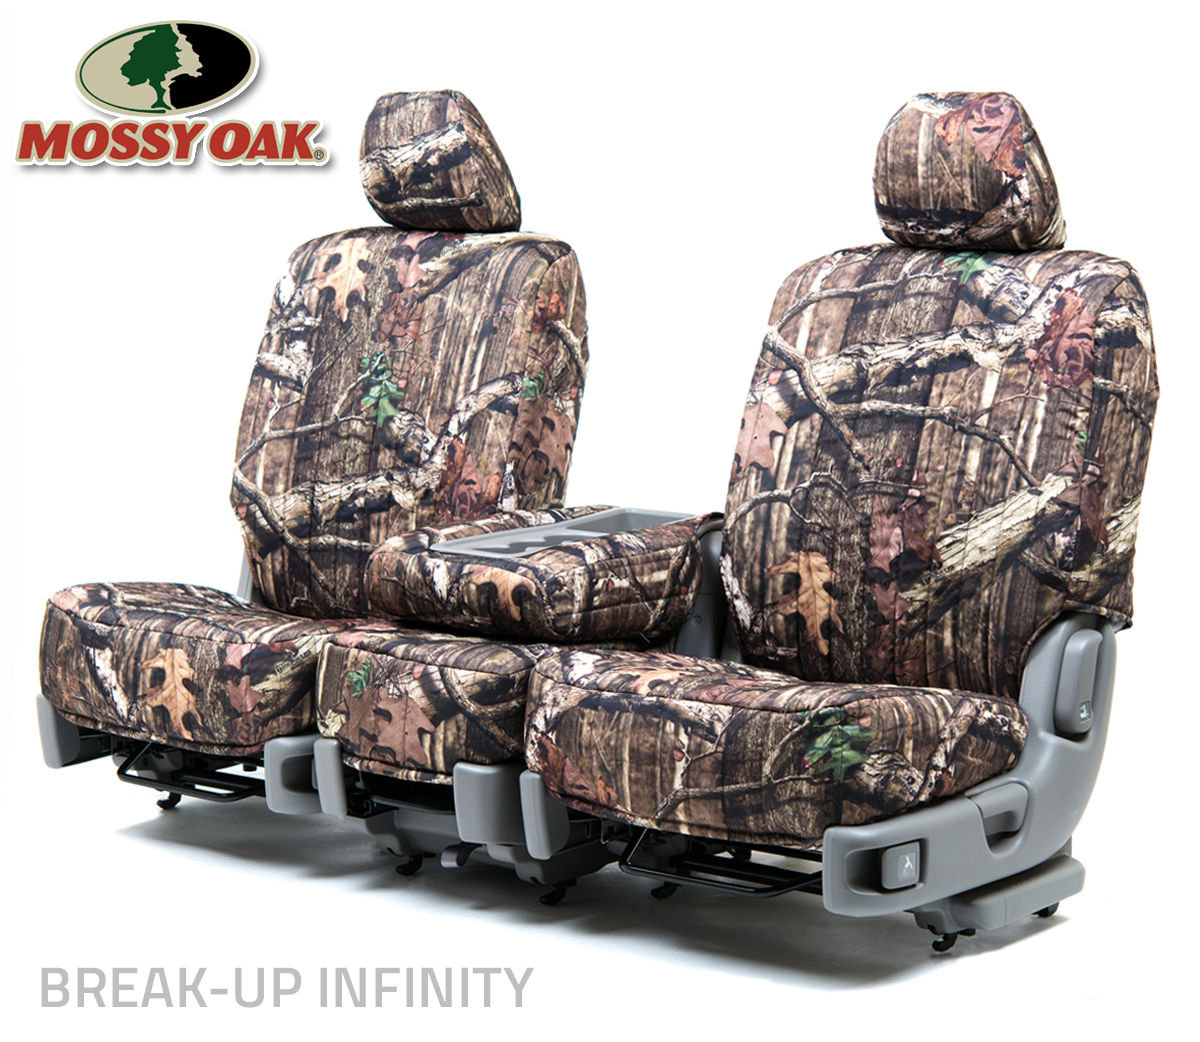 Mossy Oak Seat Covers >> Camouflage Mossy Oak Seat Covers Exclusivecoversusa